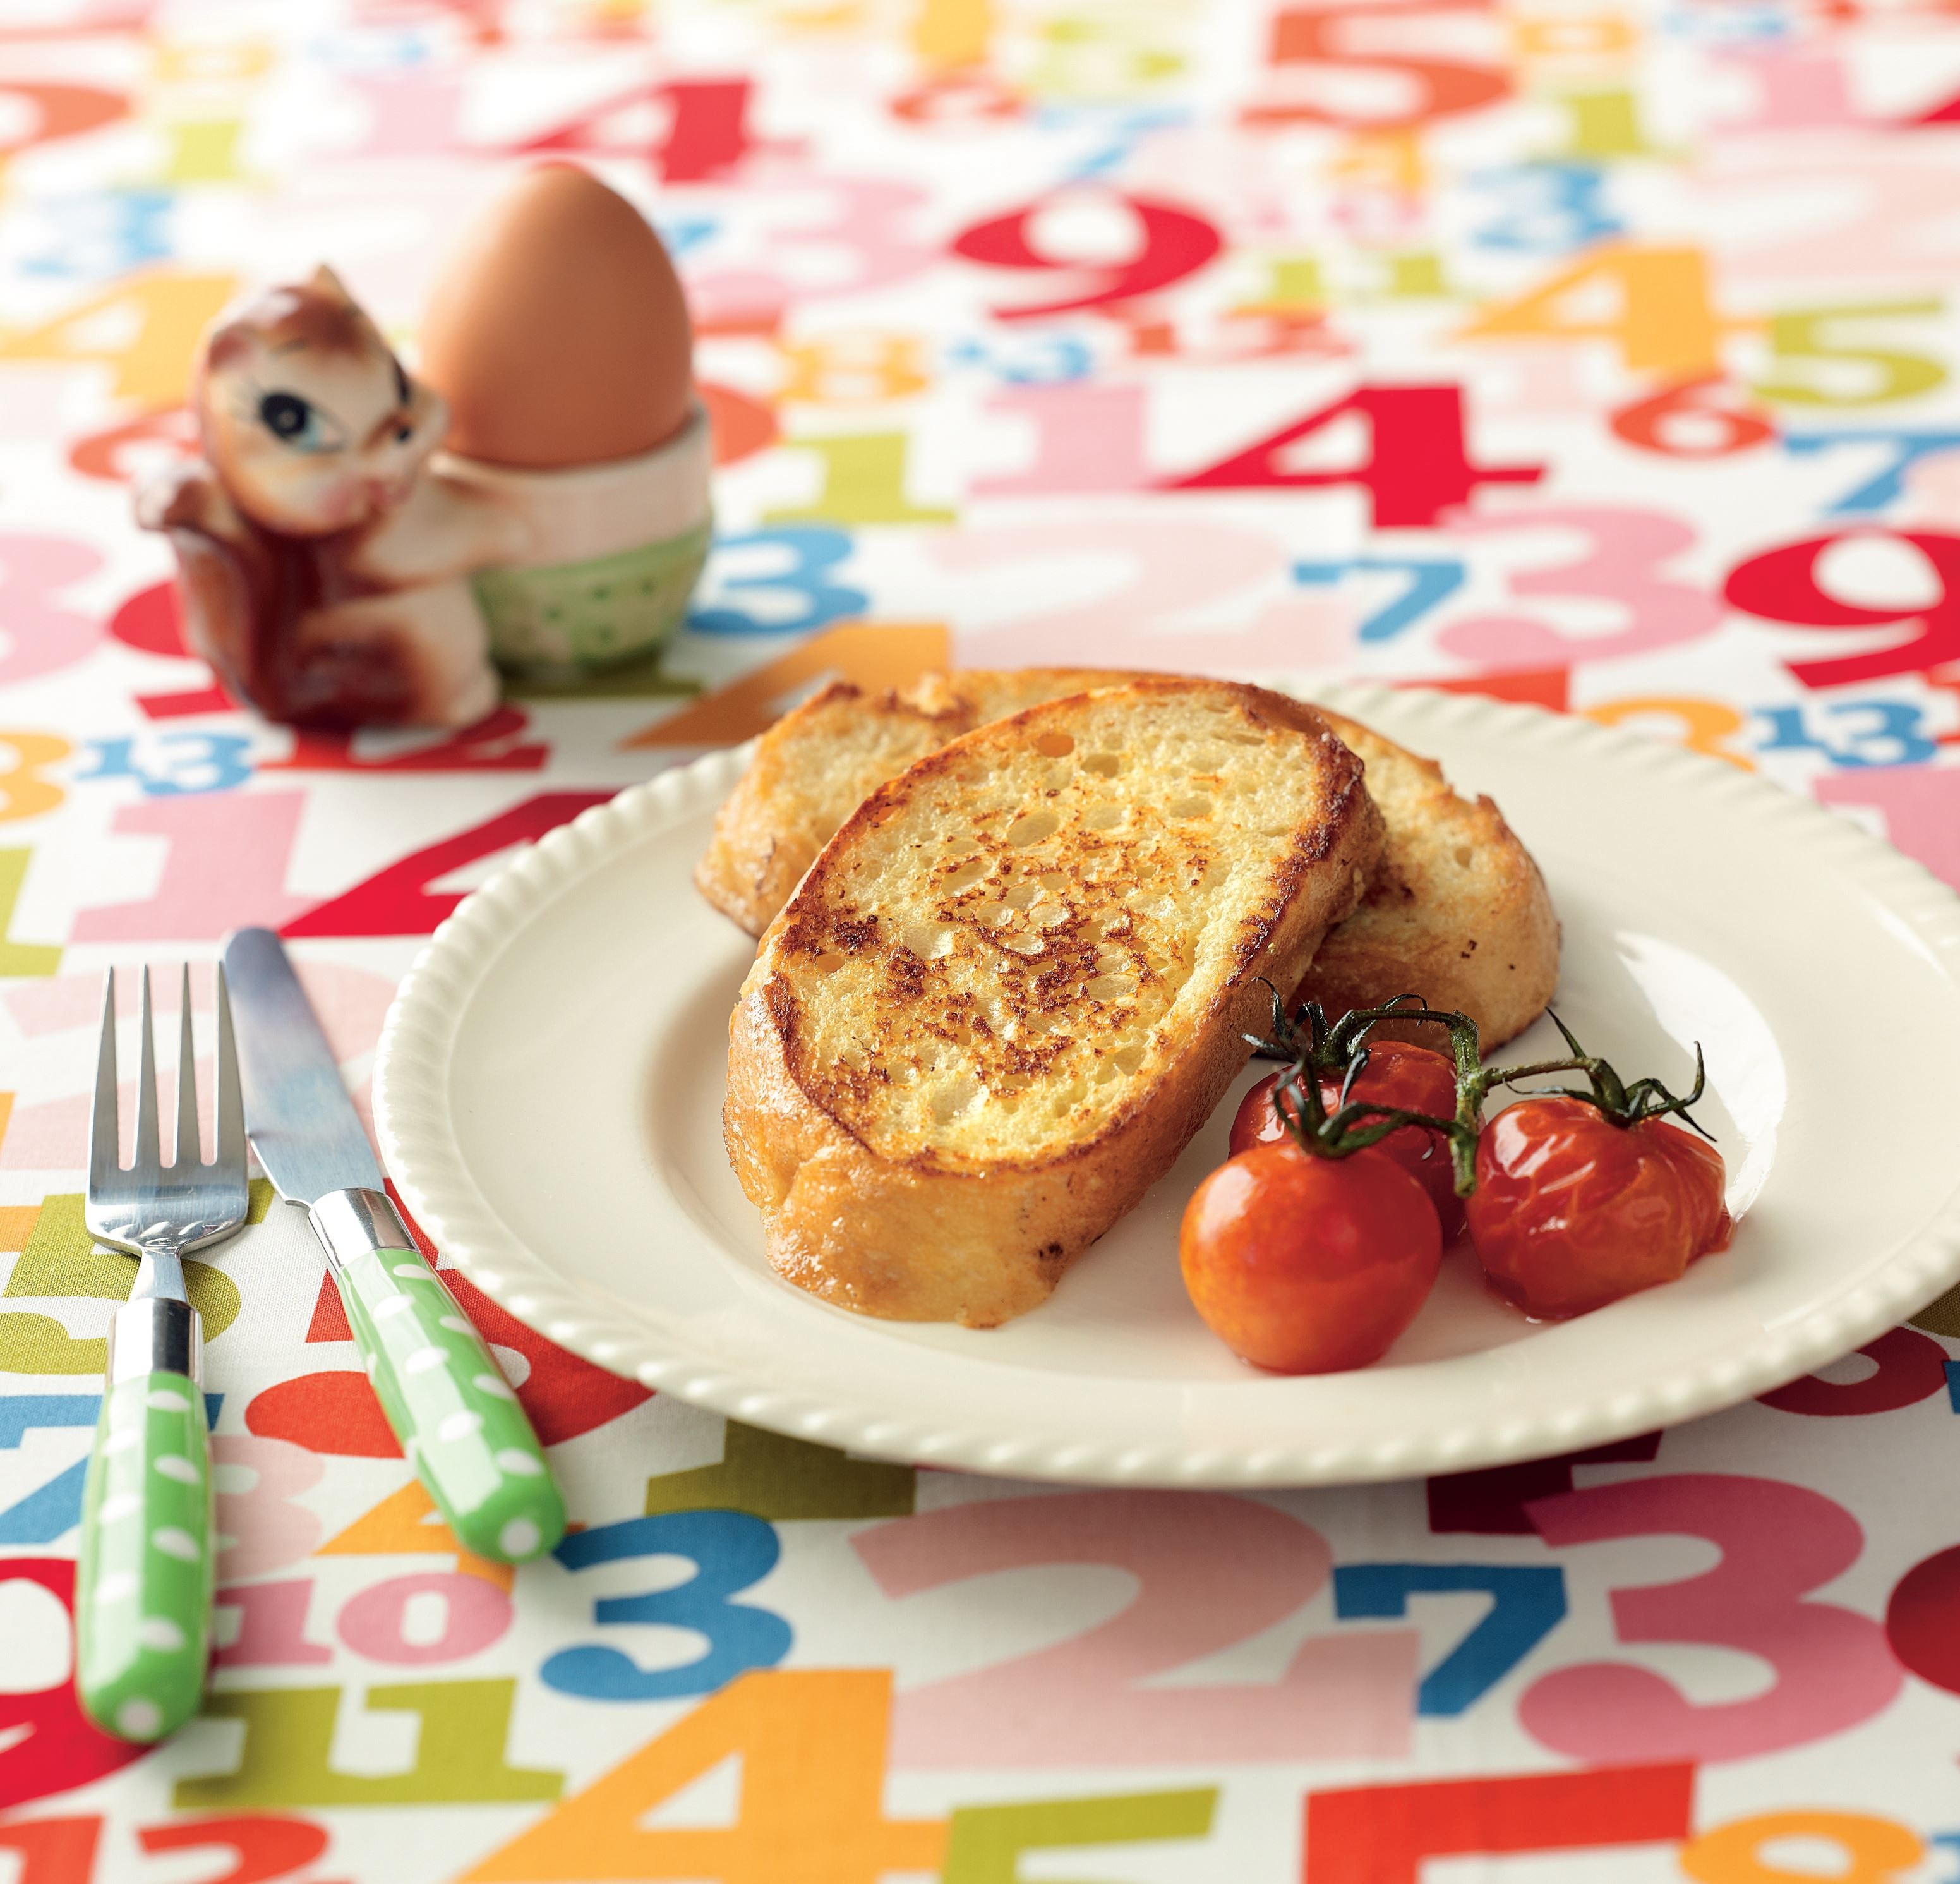 Savoury French toast